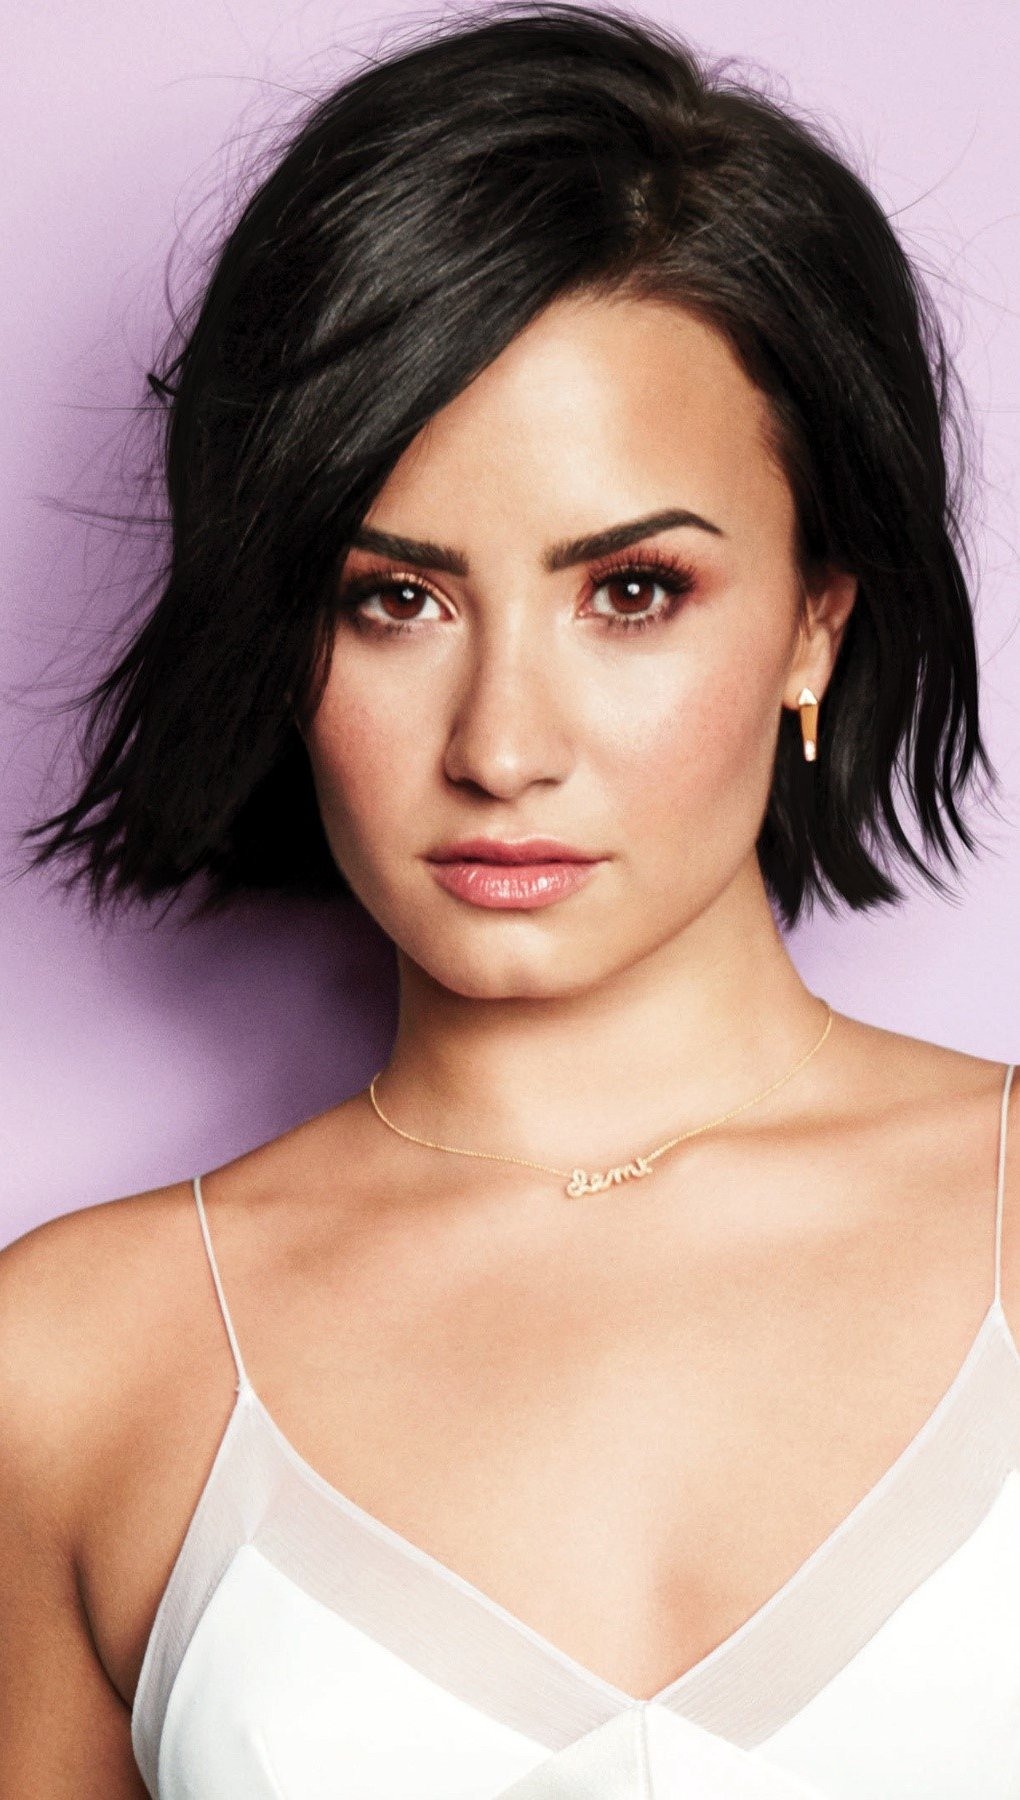 Wallpaper Demi Lovato with short hair Vertical